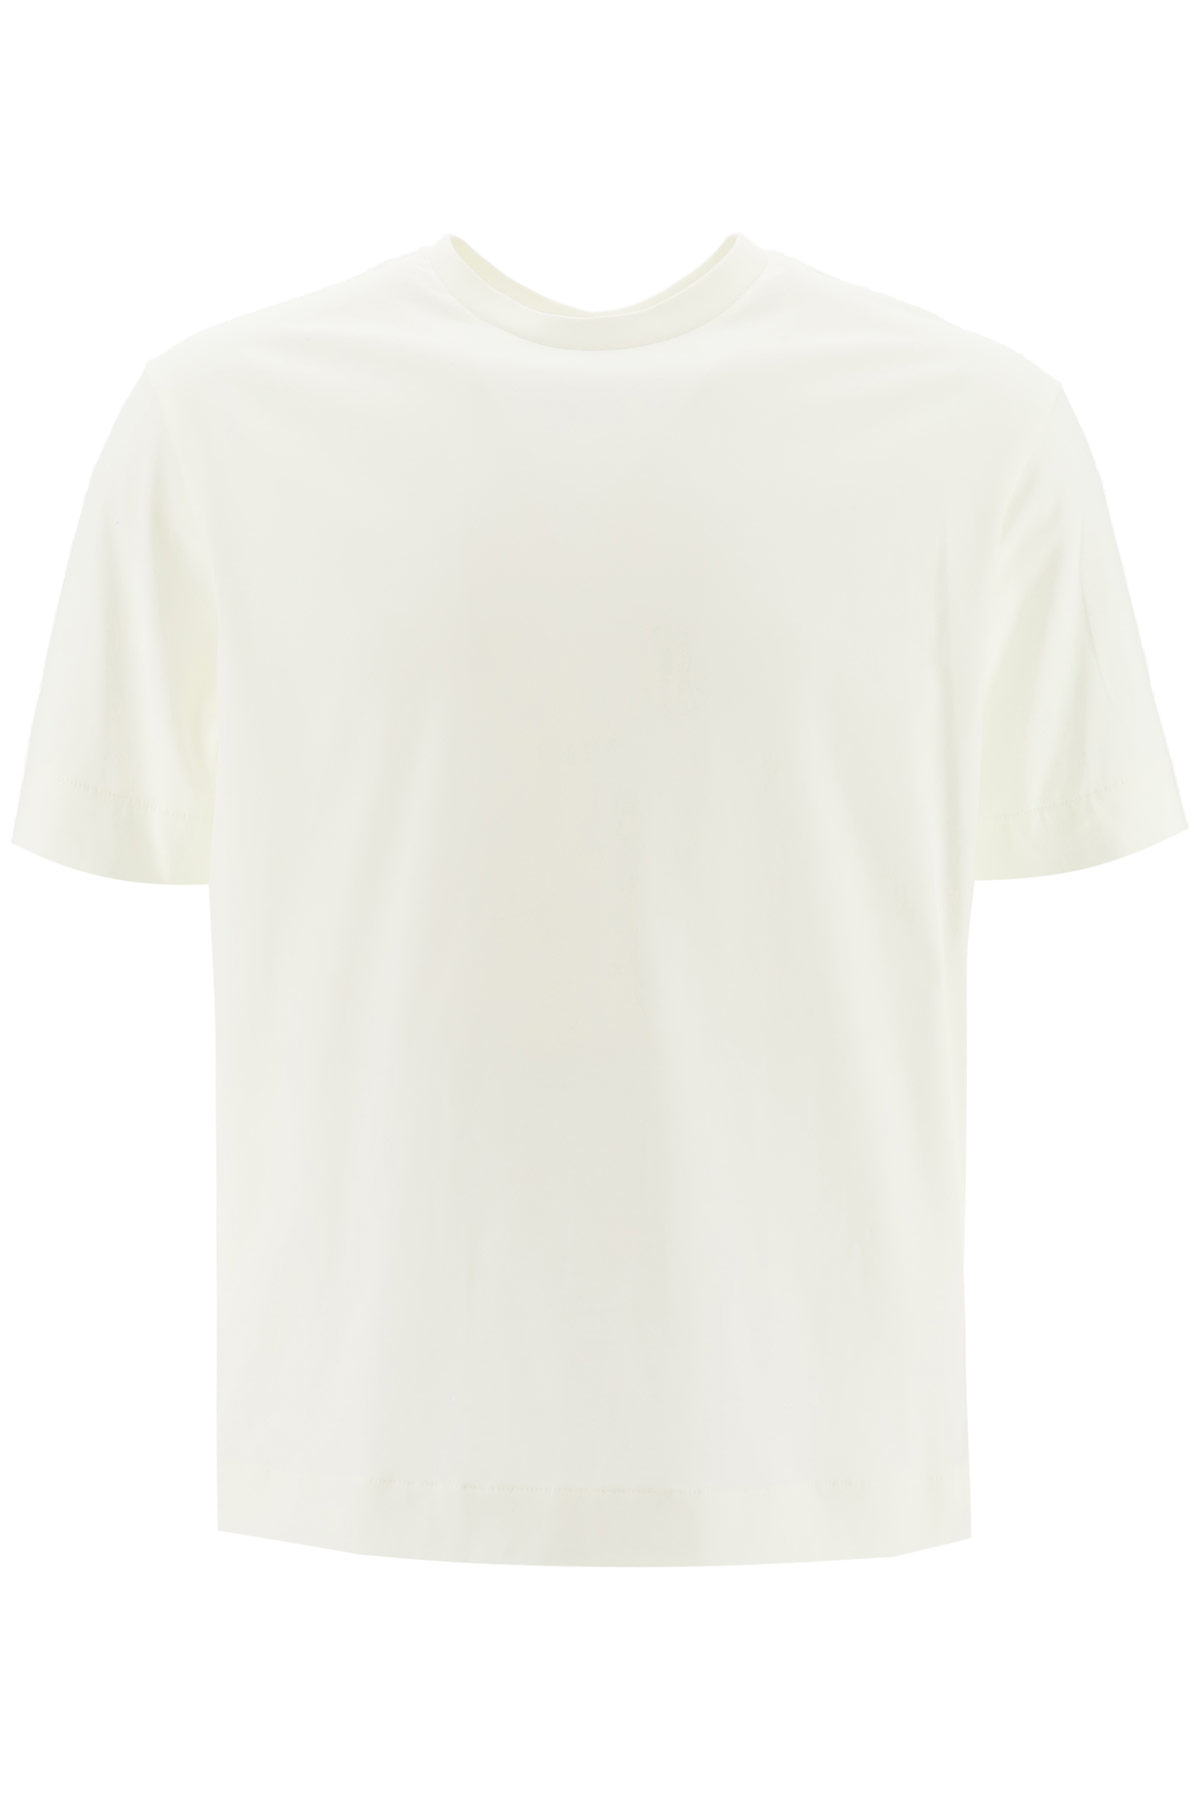 Y-3 CH2 GRAPHIC T-SHIRT XL White Cotton